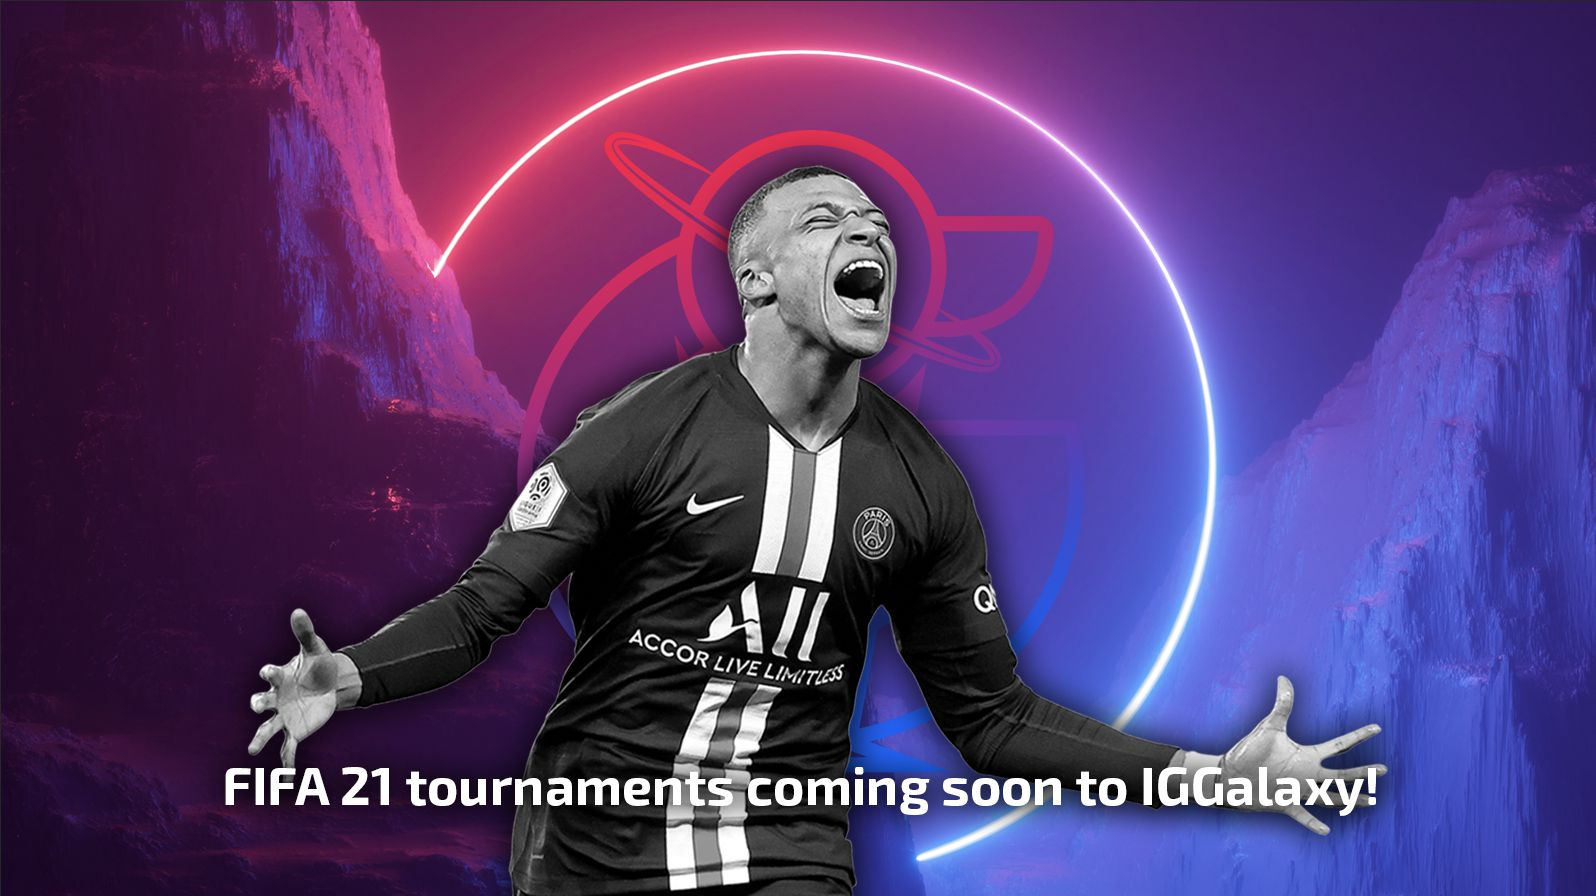 FIFA 21 tournaments coming to IGGalaxy!